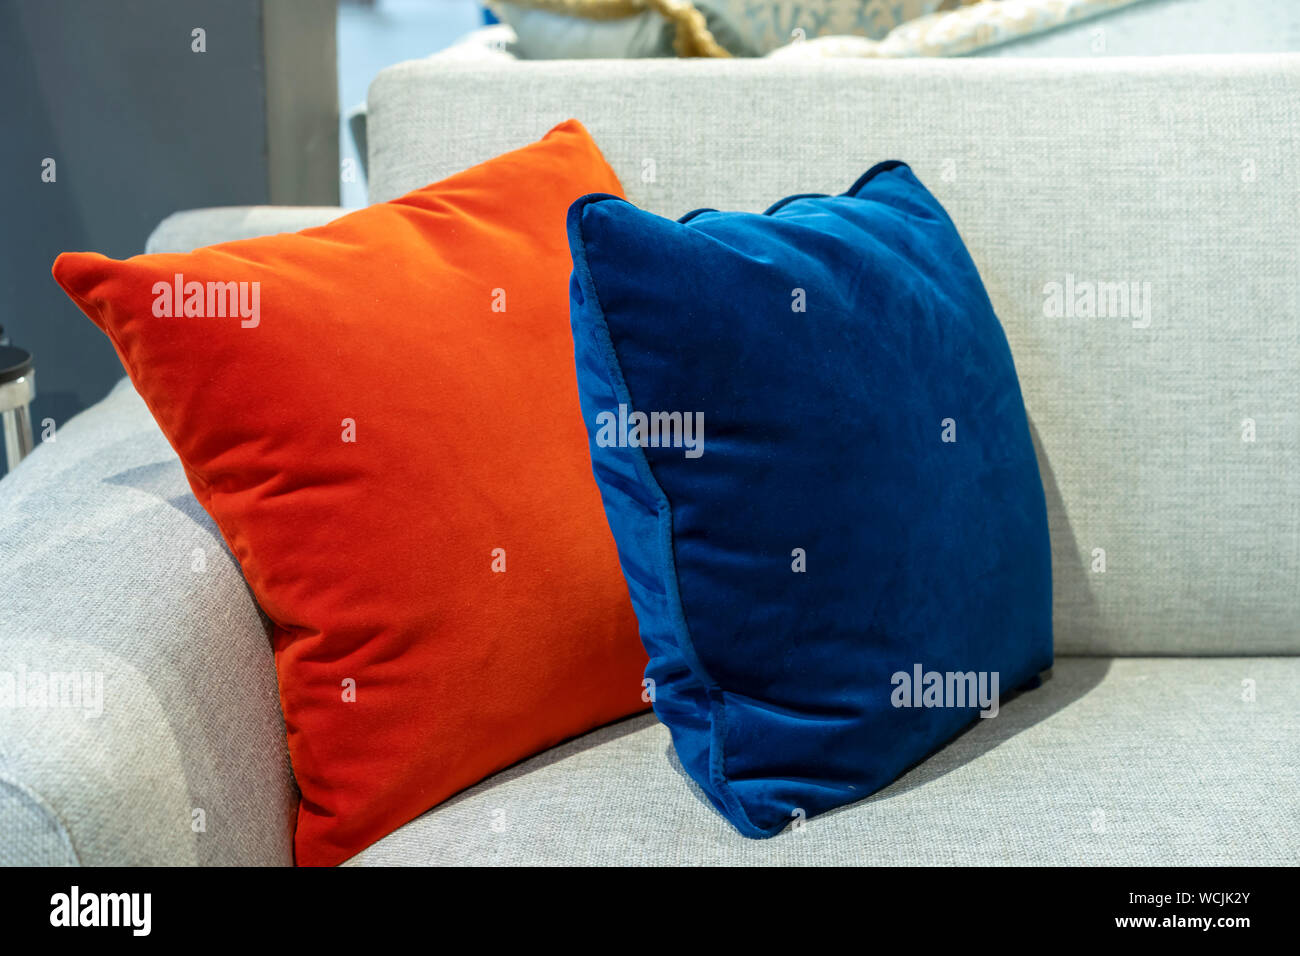 Superb Orange And Blue Decorative Pillows On A Beige Sofa Stock Machost Co Dining Chair Design Ideas Machostcouk